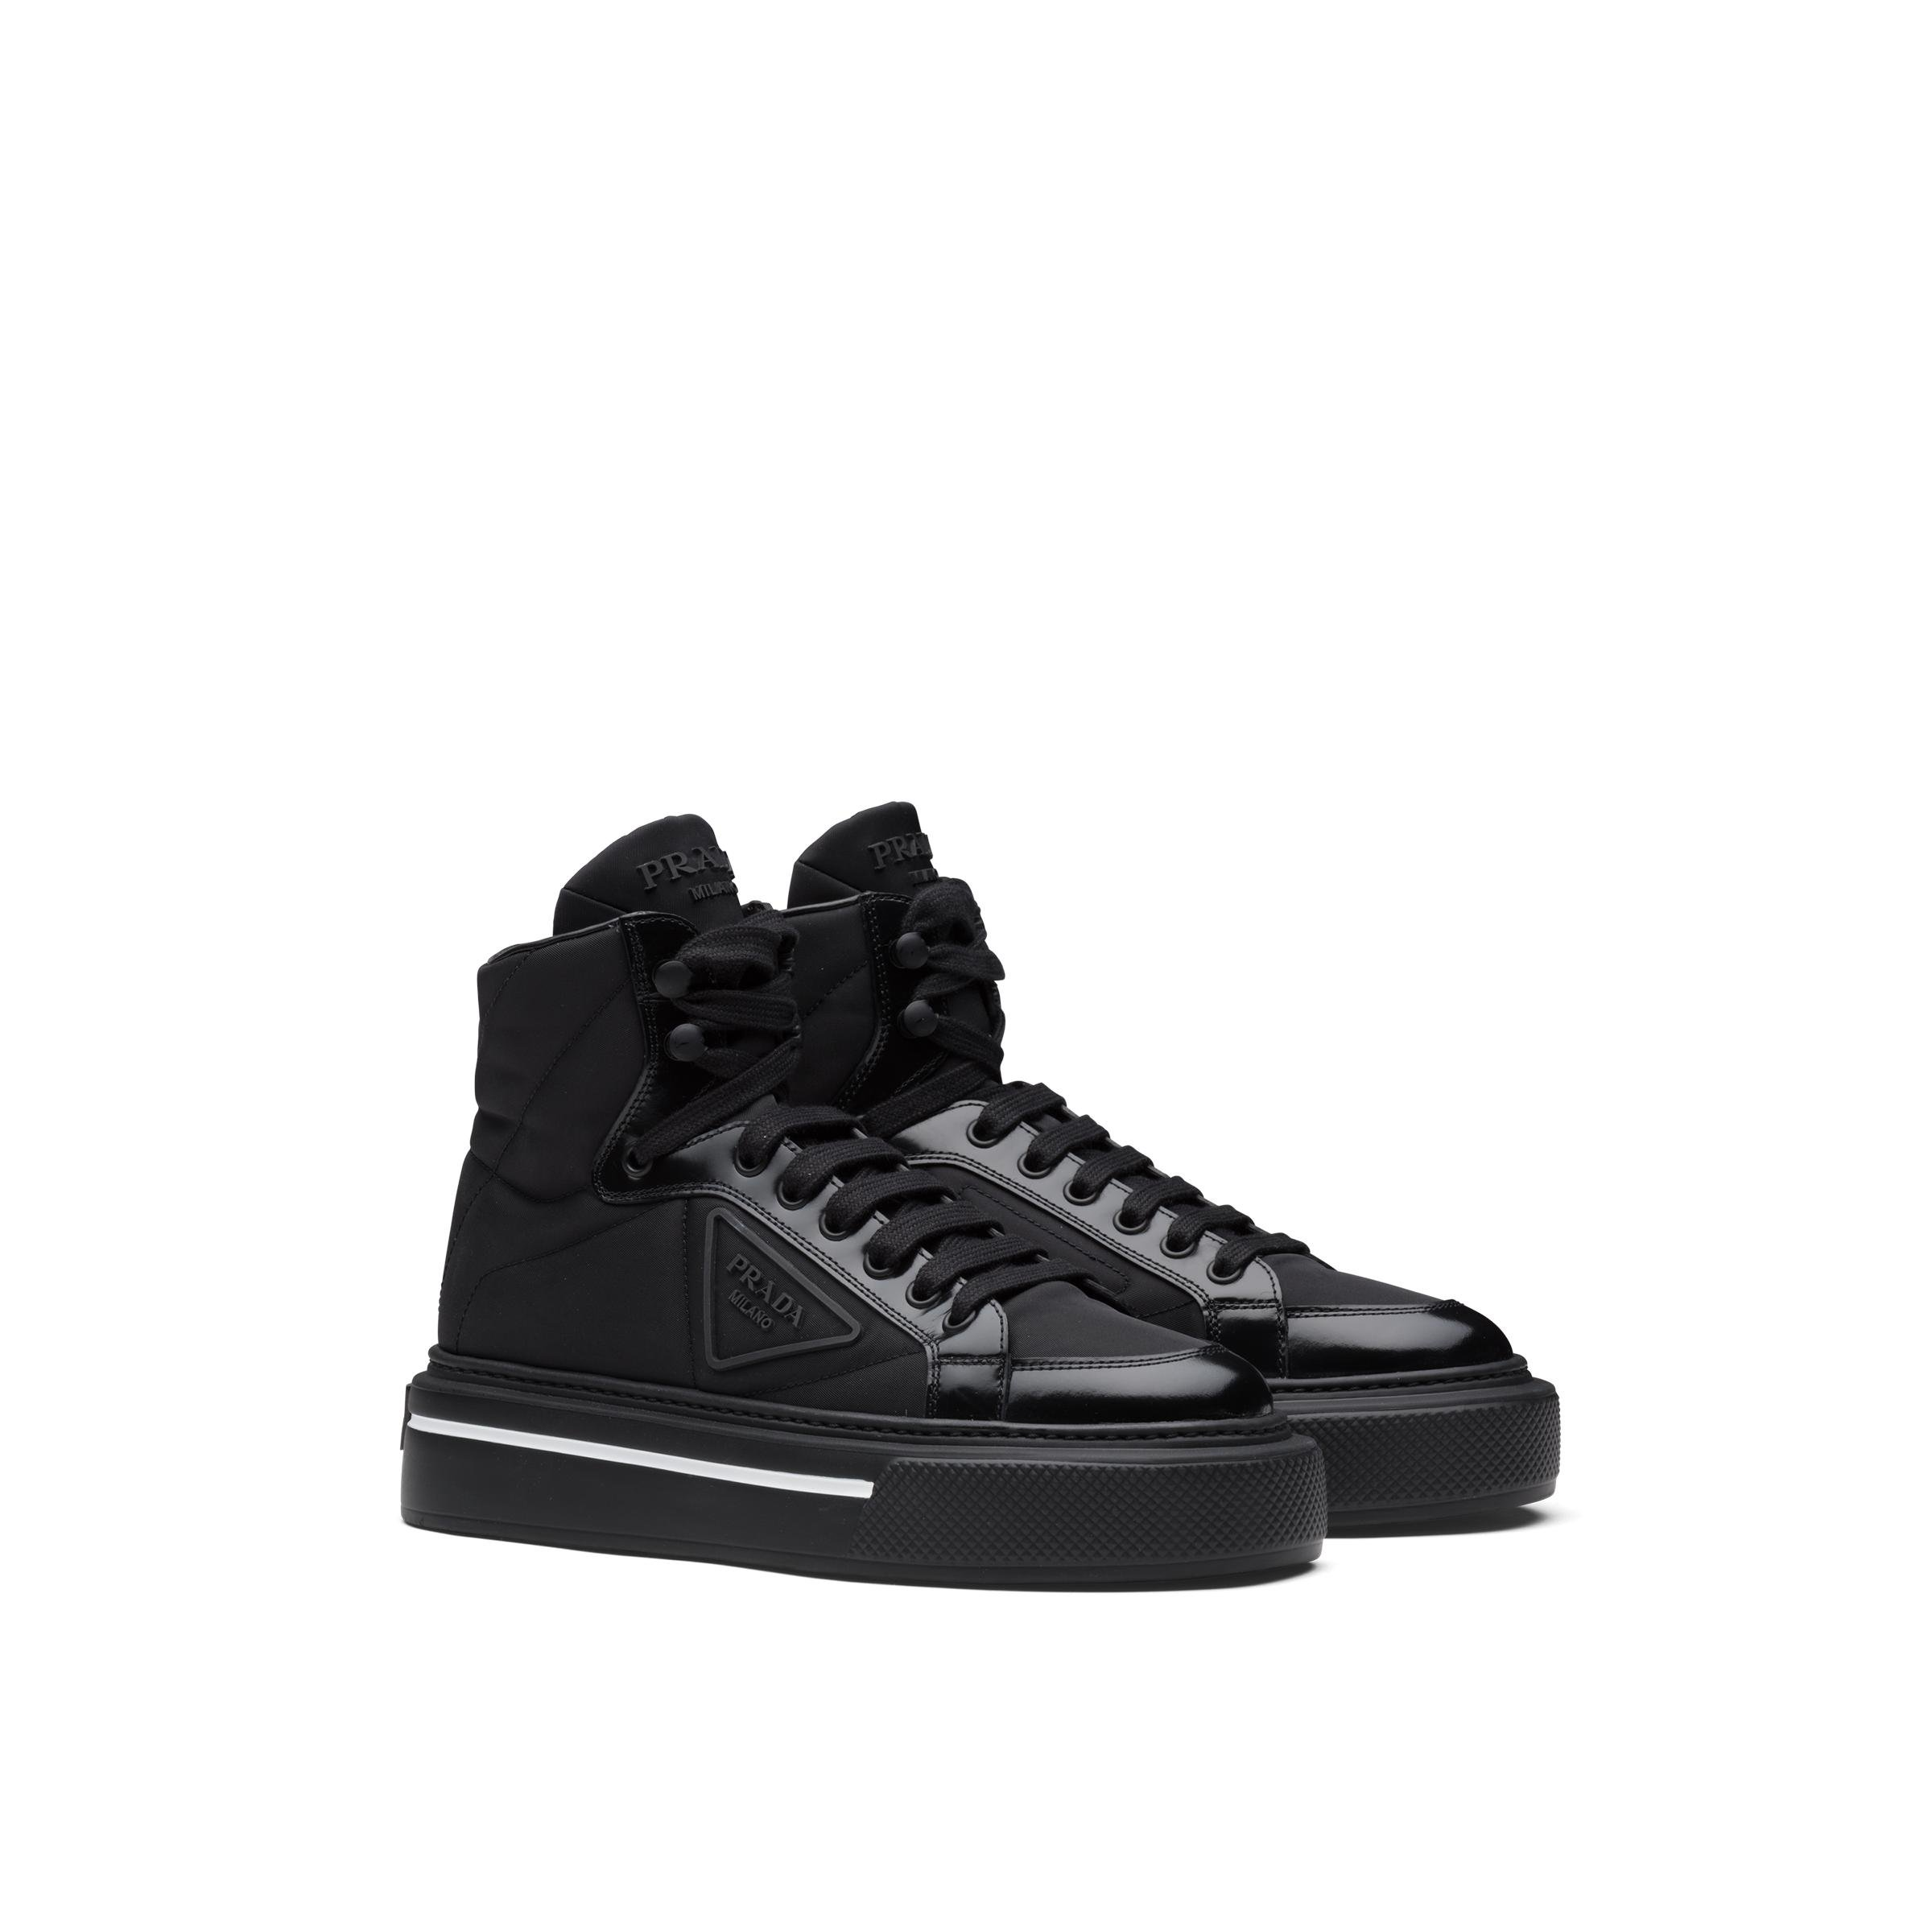 Macro Re-nylon And Brushed Leather High-top Sneakers Women Black